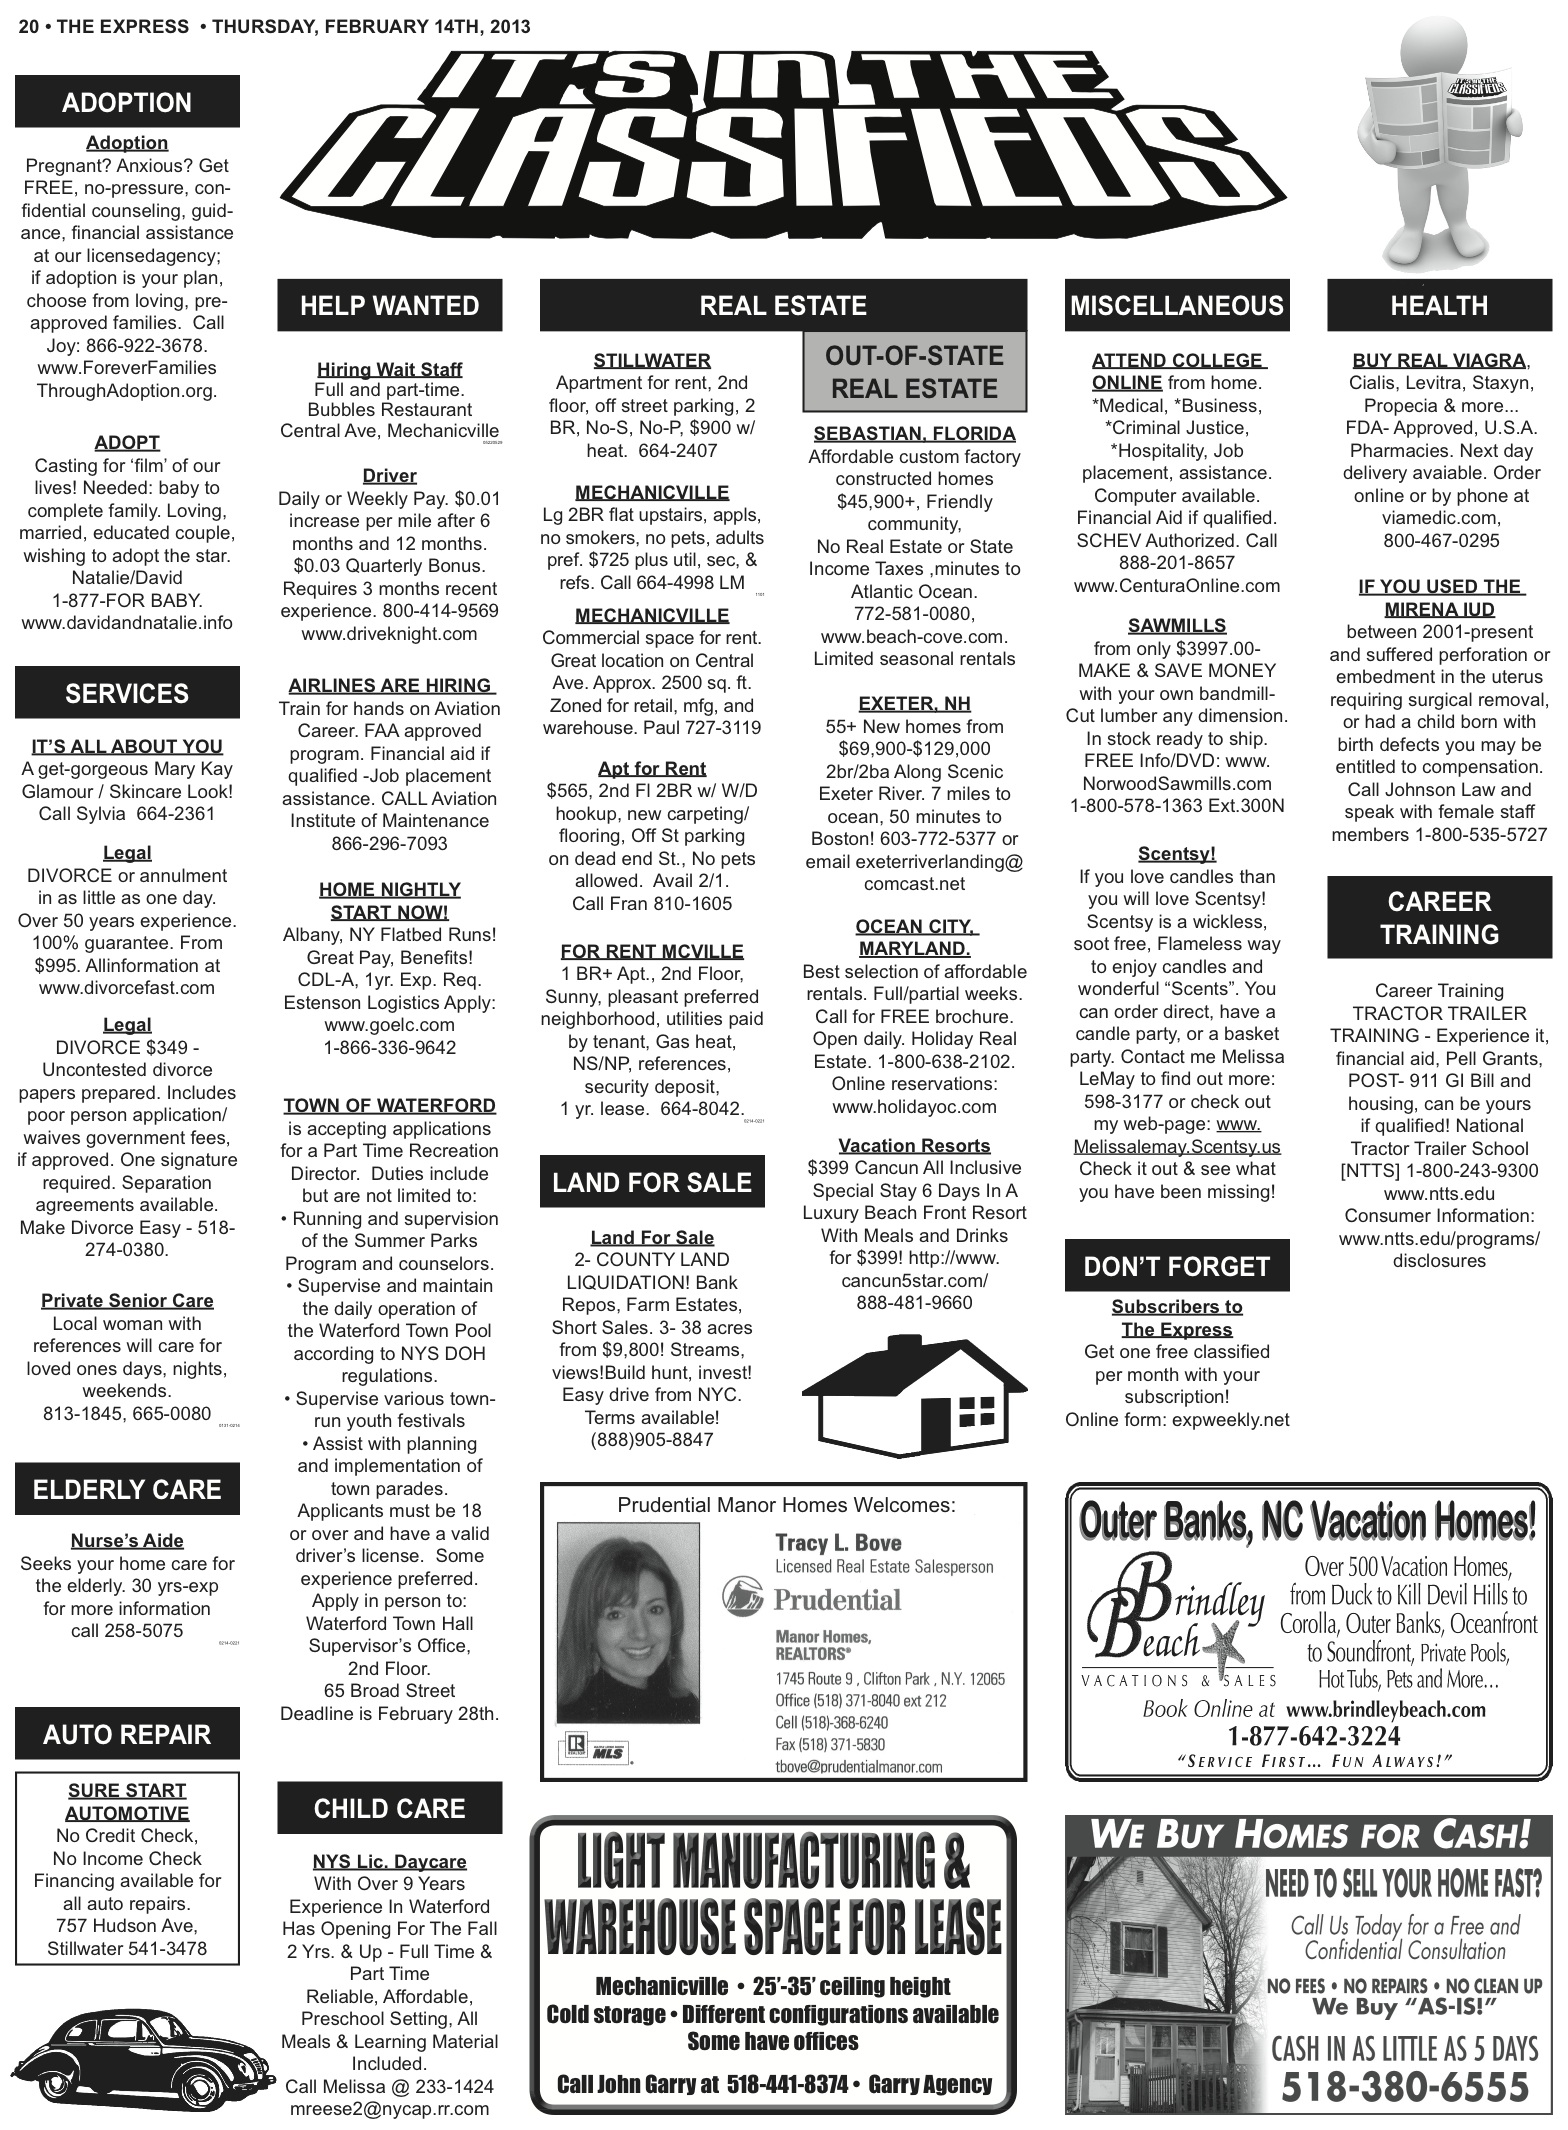 Classified Ads for February 14, 2013 | The Express Newspaper